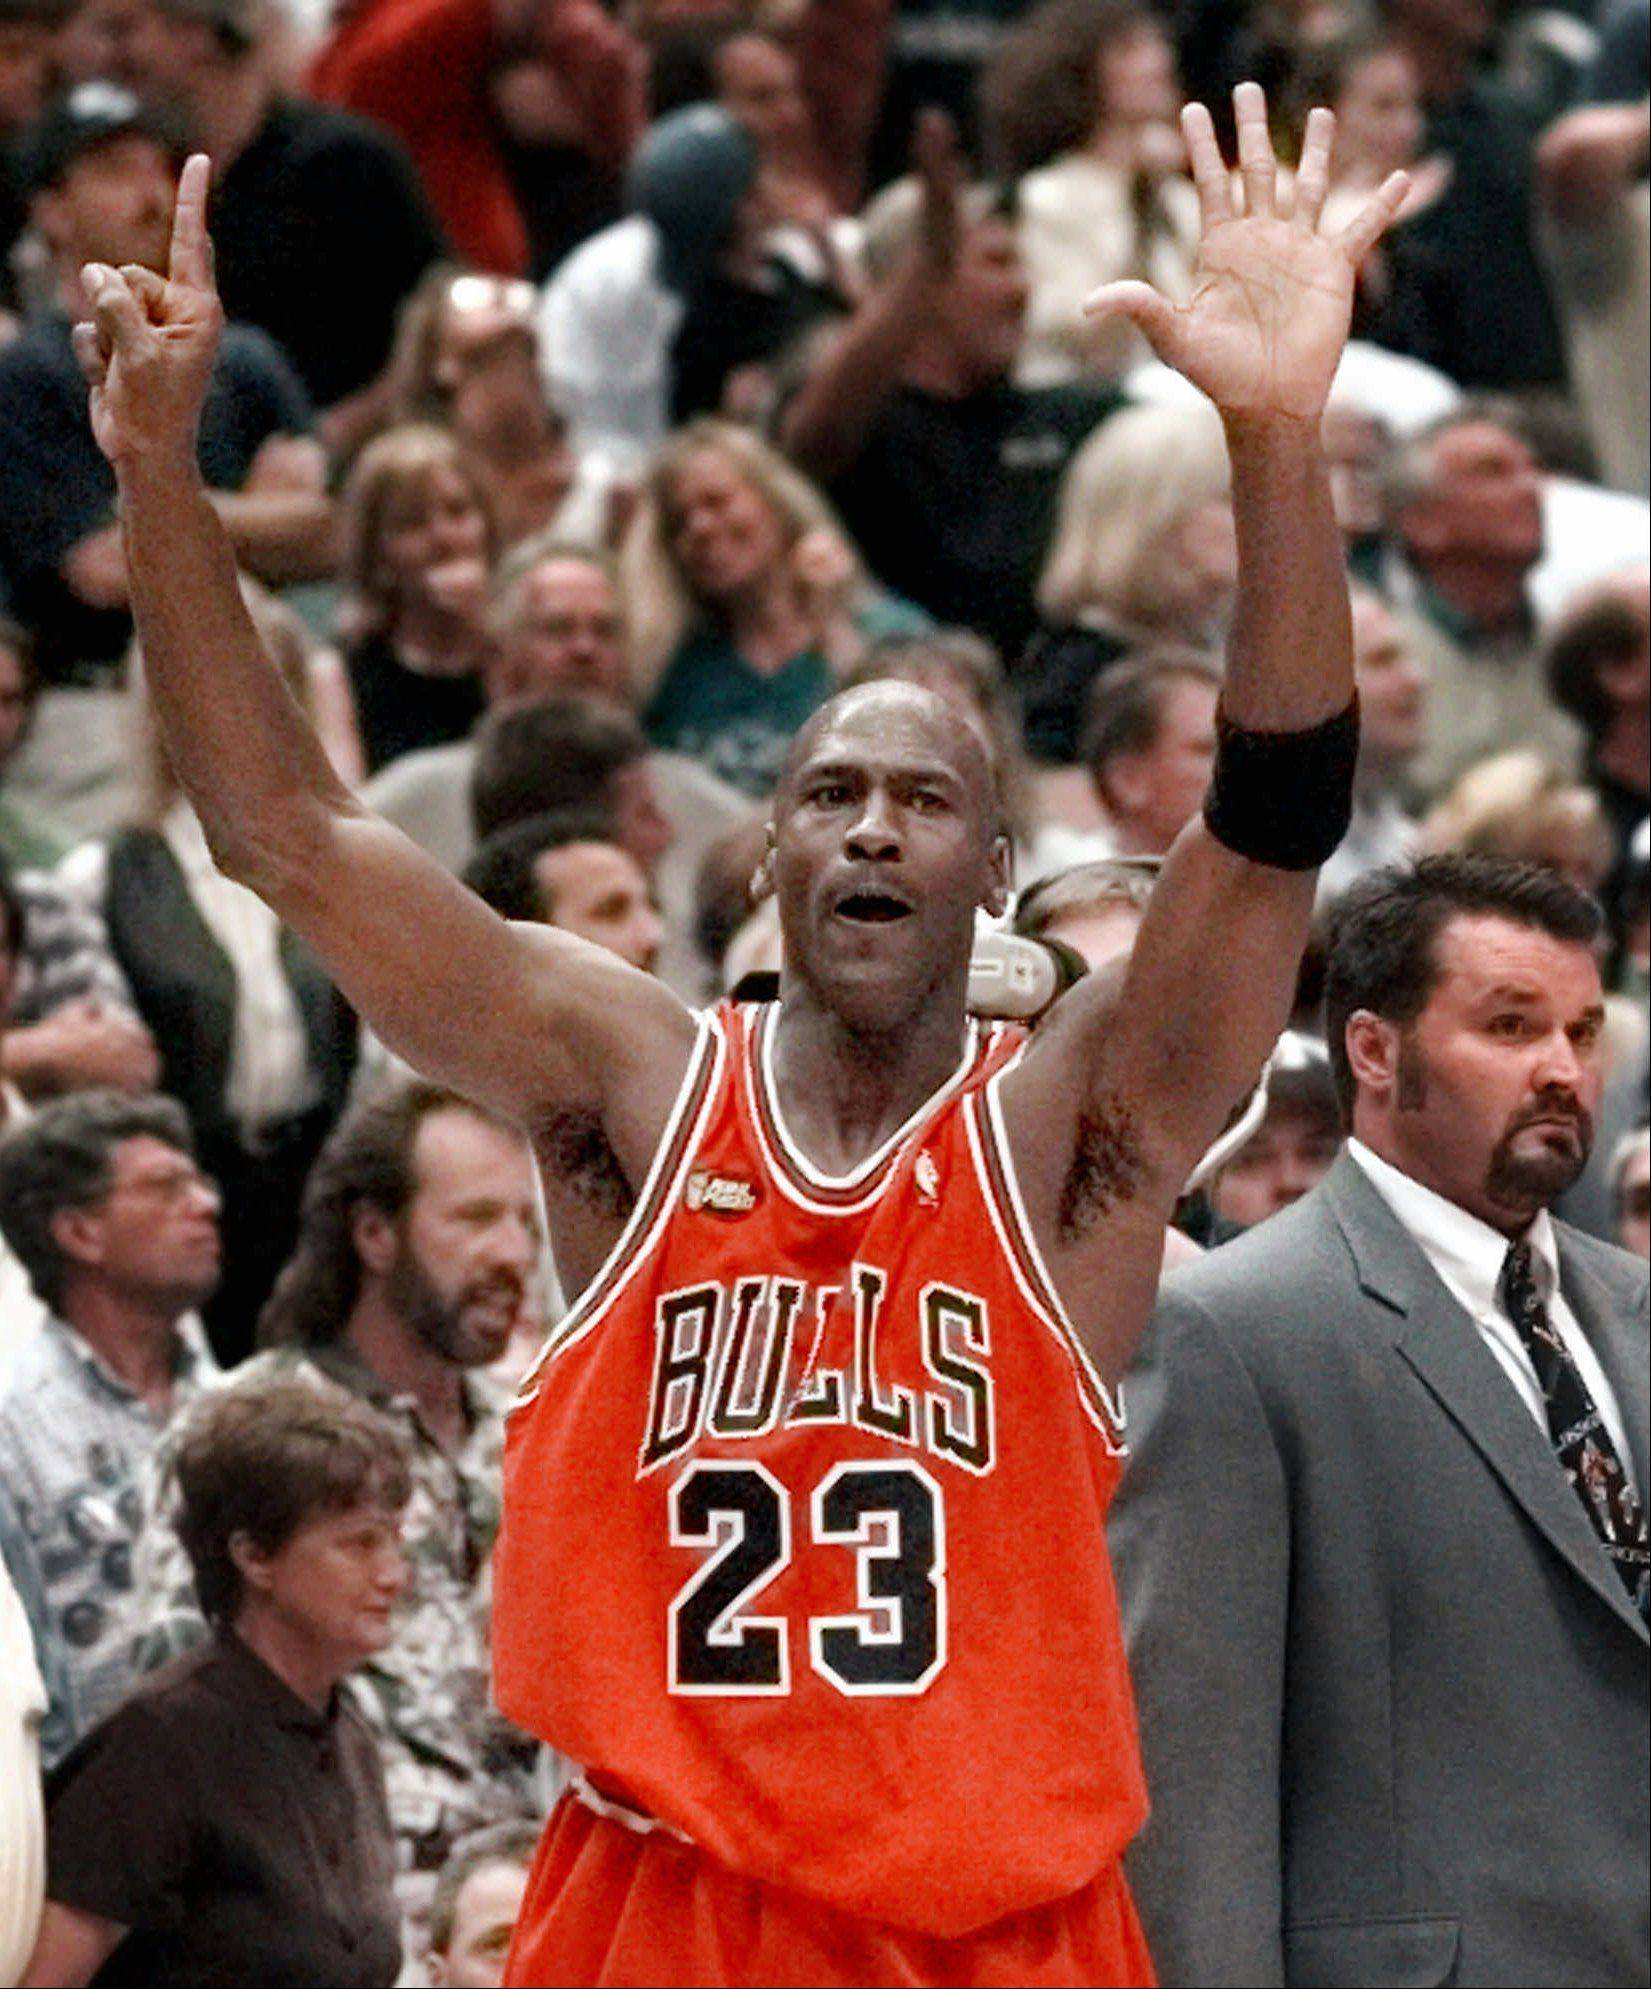 Michael Jordan won six NBA Chcampionship titles with the Chicago Bulls, and LeBron James has won one with the Miami Heat. If James wins three or four titles, some NBA experts believe he'll be considered as great as Jordan. Mike North, however, says six is still greater than four in his math world, so go ahead and compare James with other NBA greats, but not with Jordan just yet.